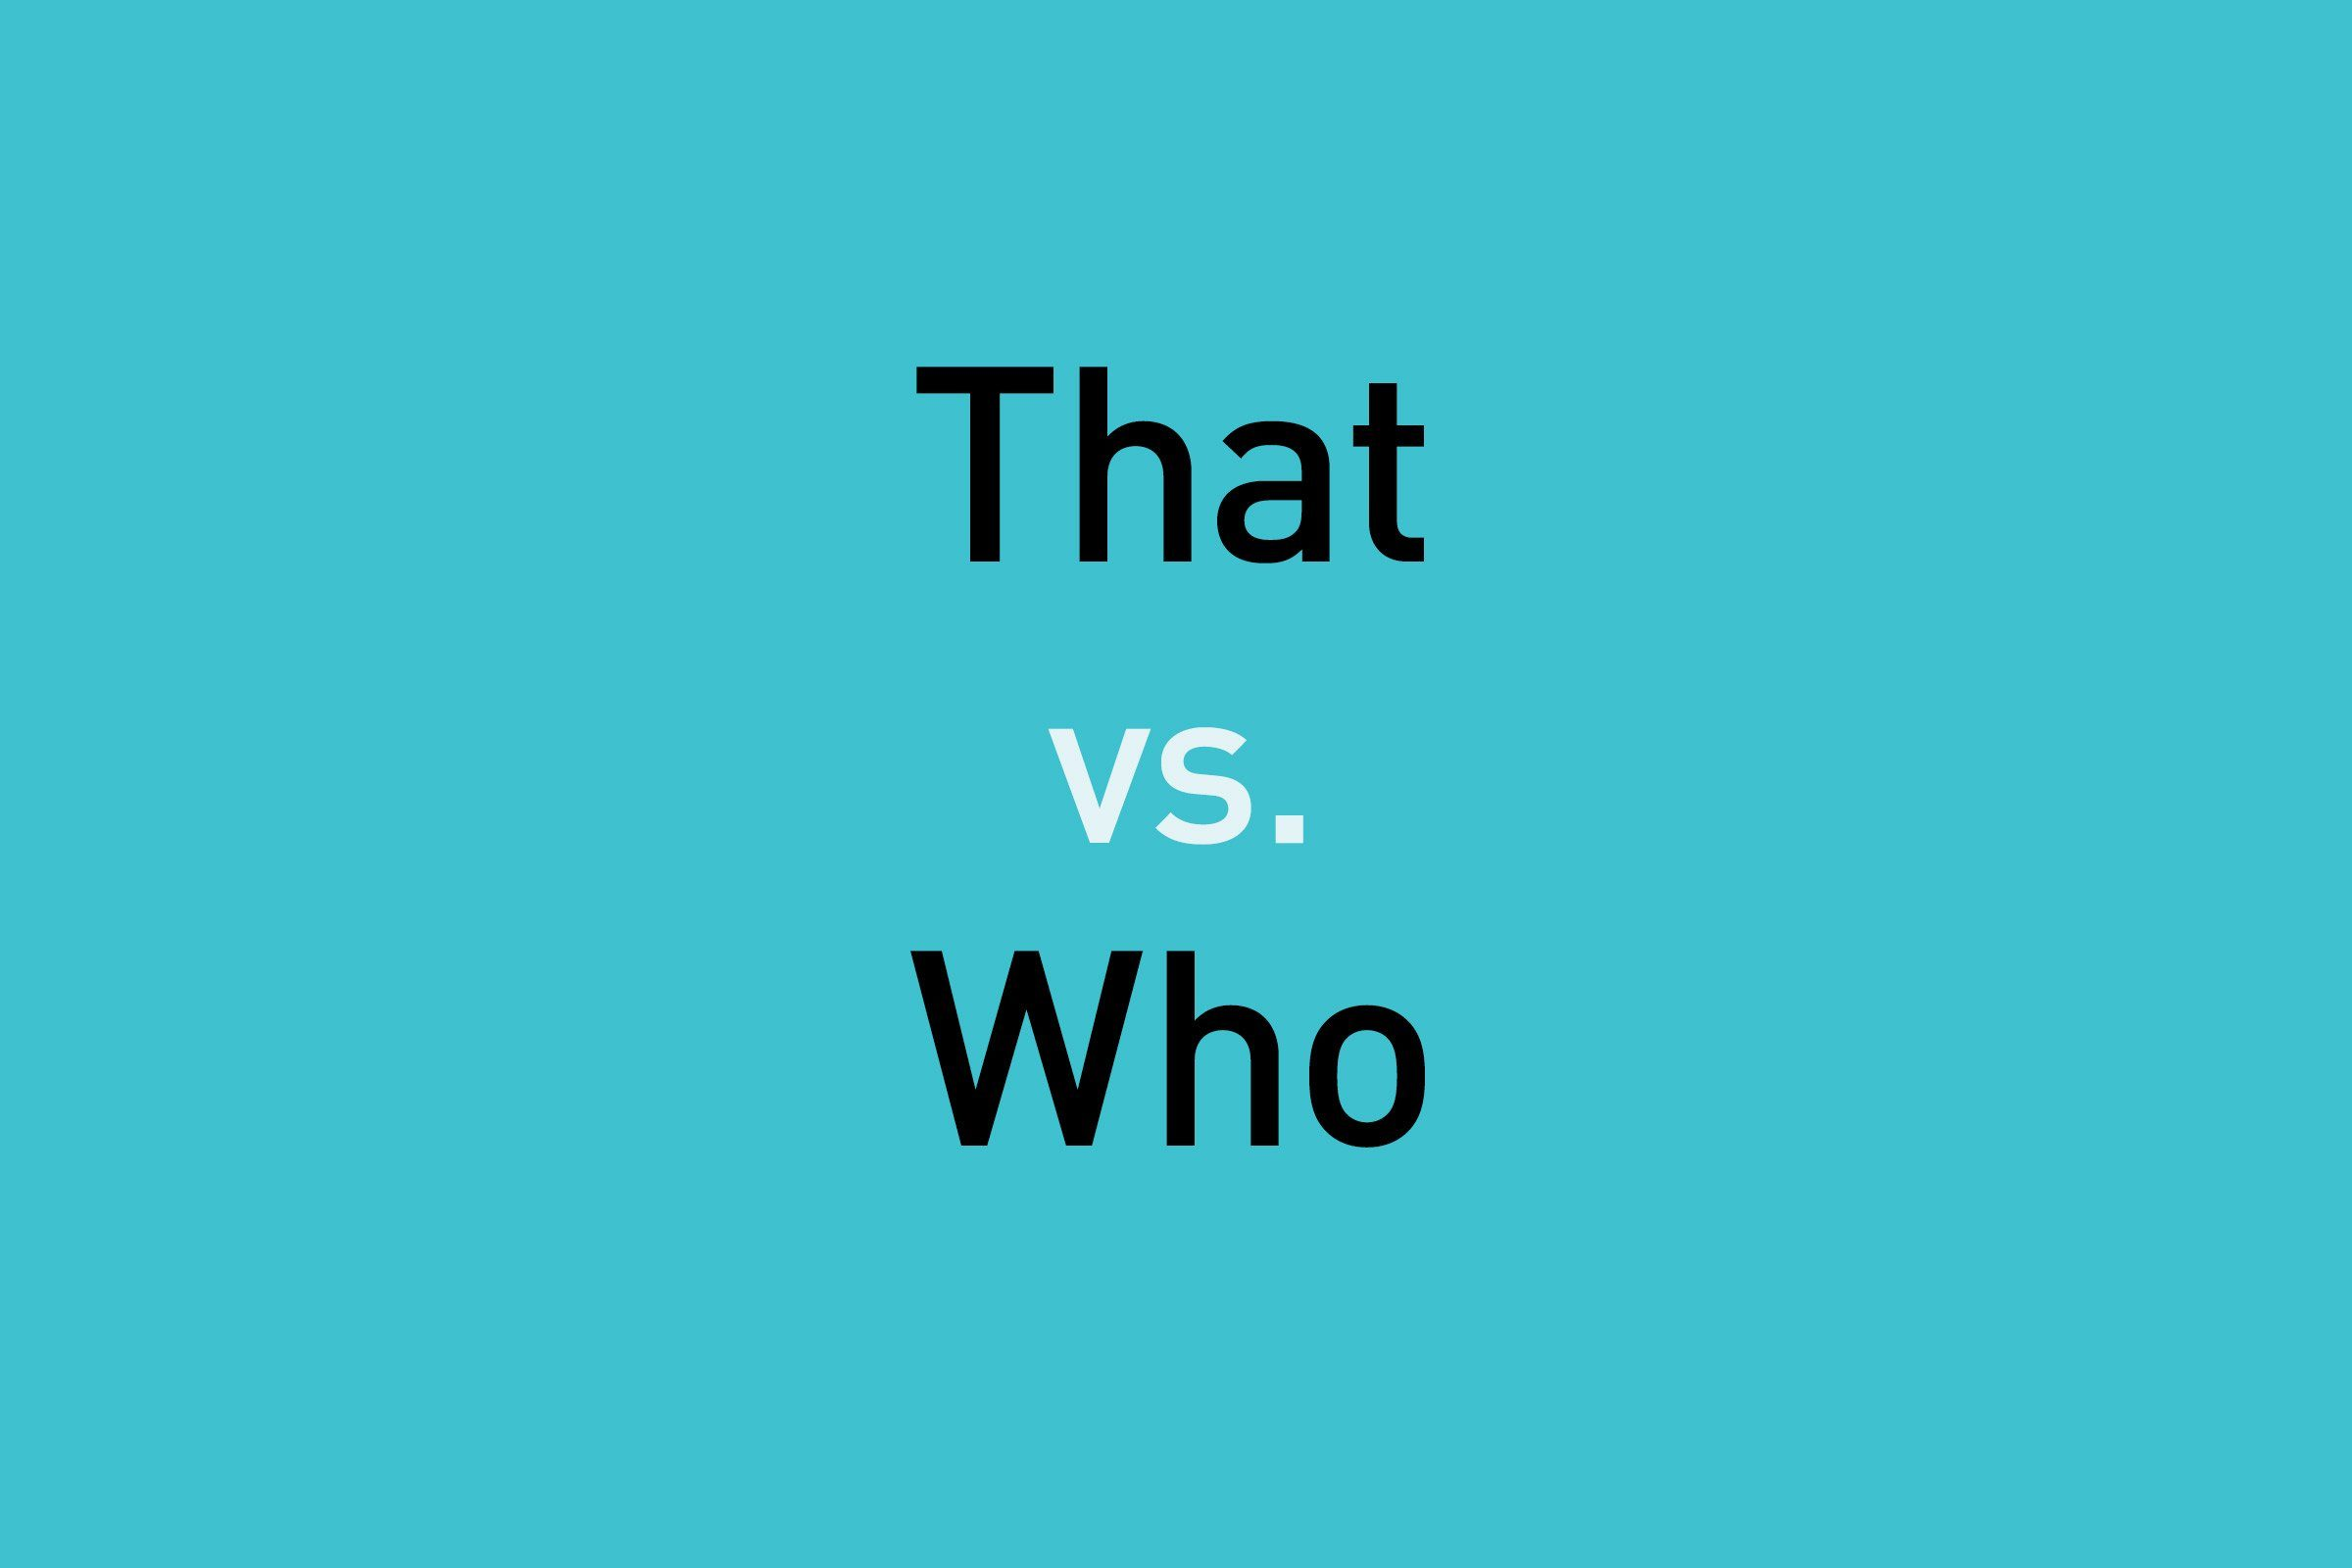 text: that vs. who